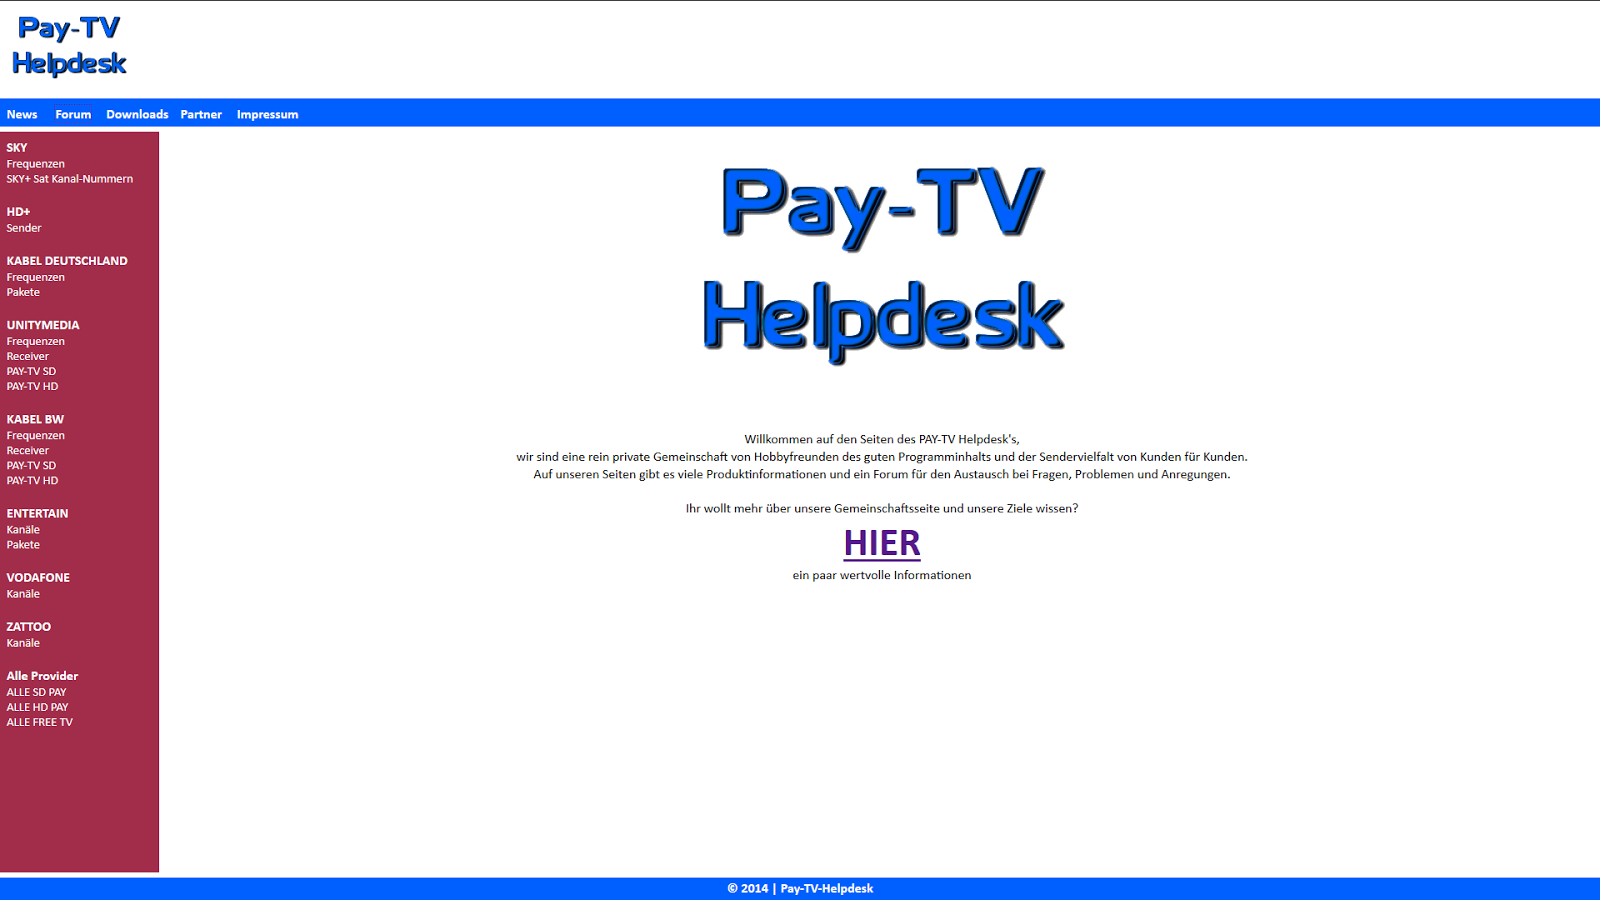 pay-tv-helpdesk.de